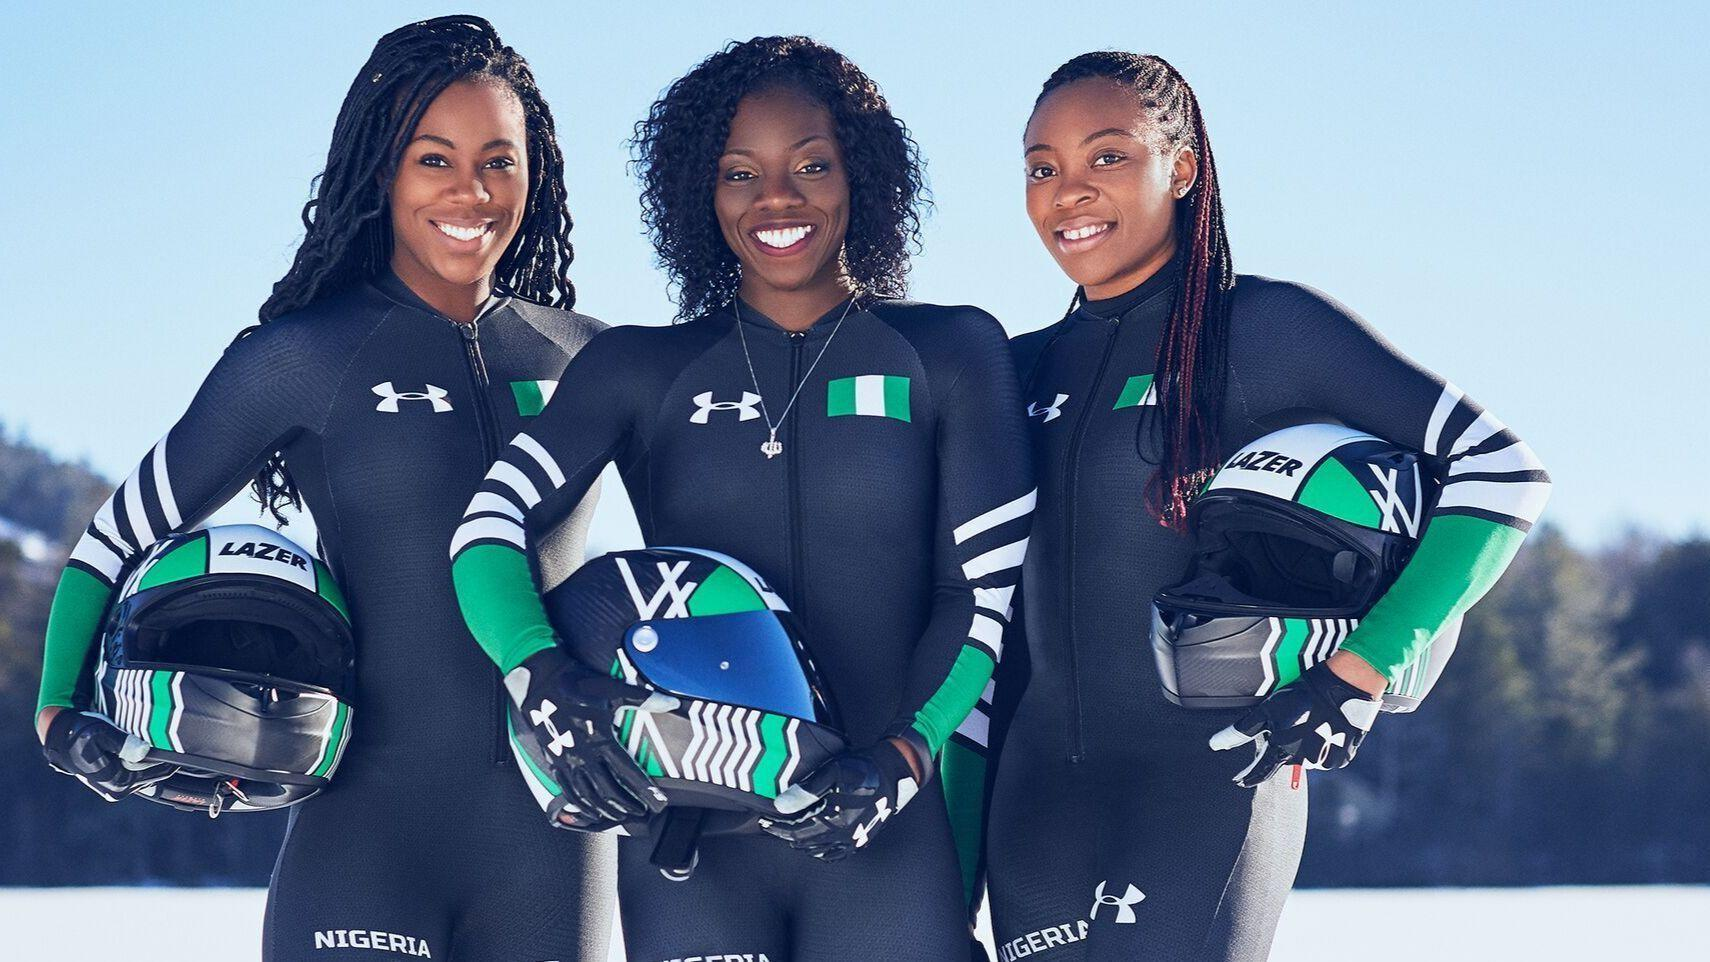 Winter Olympics: Nigerian Bobled Pair Place 19th In Heats